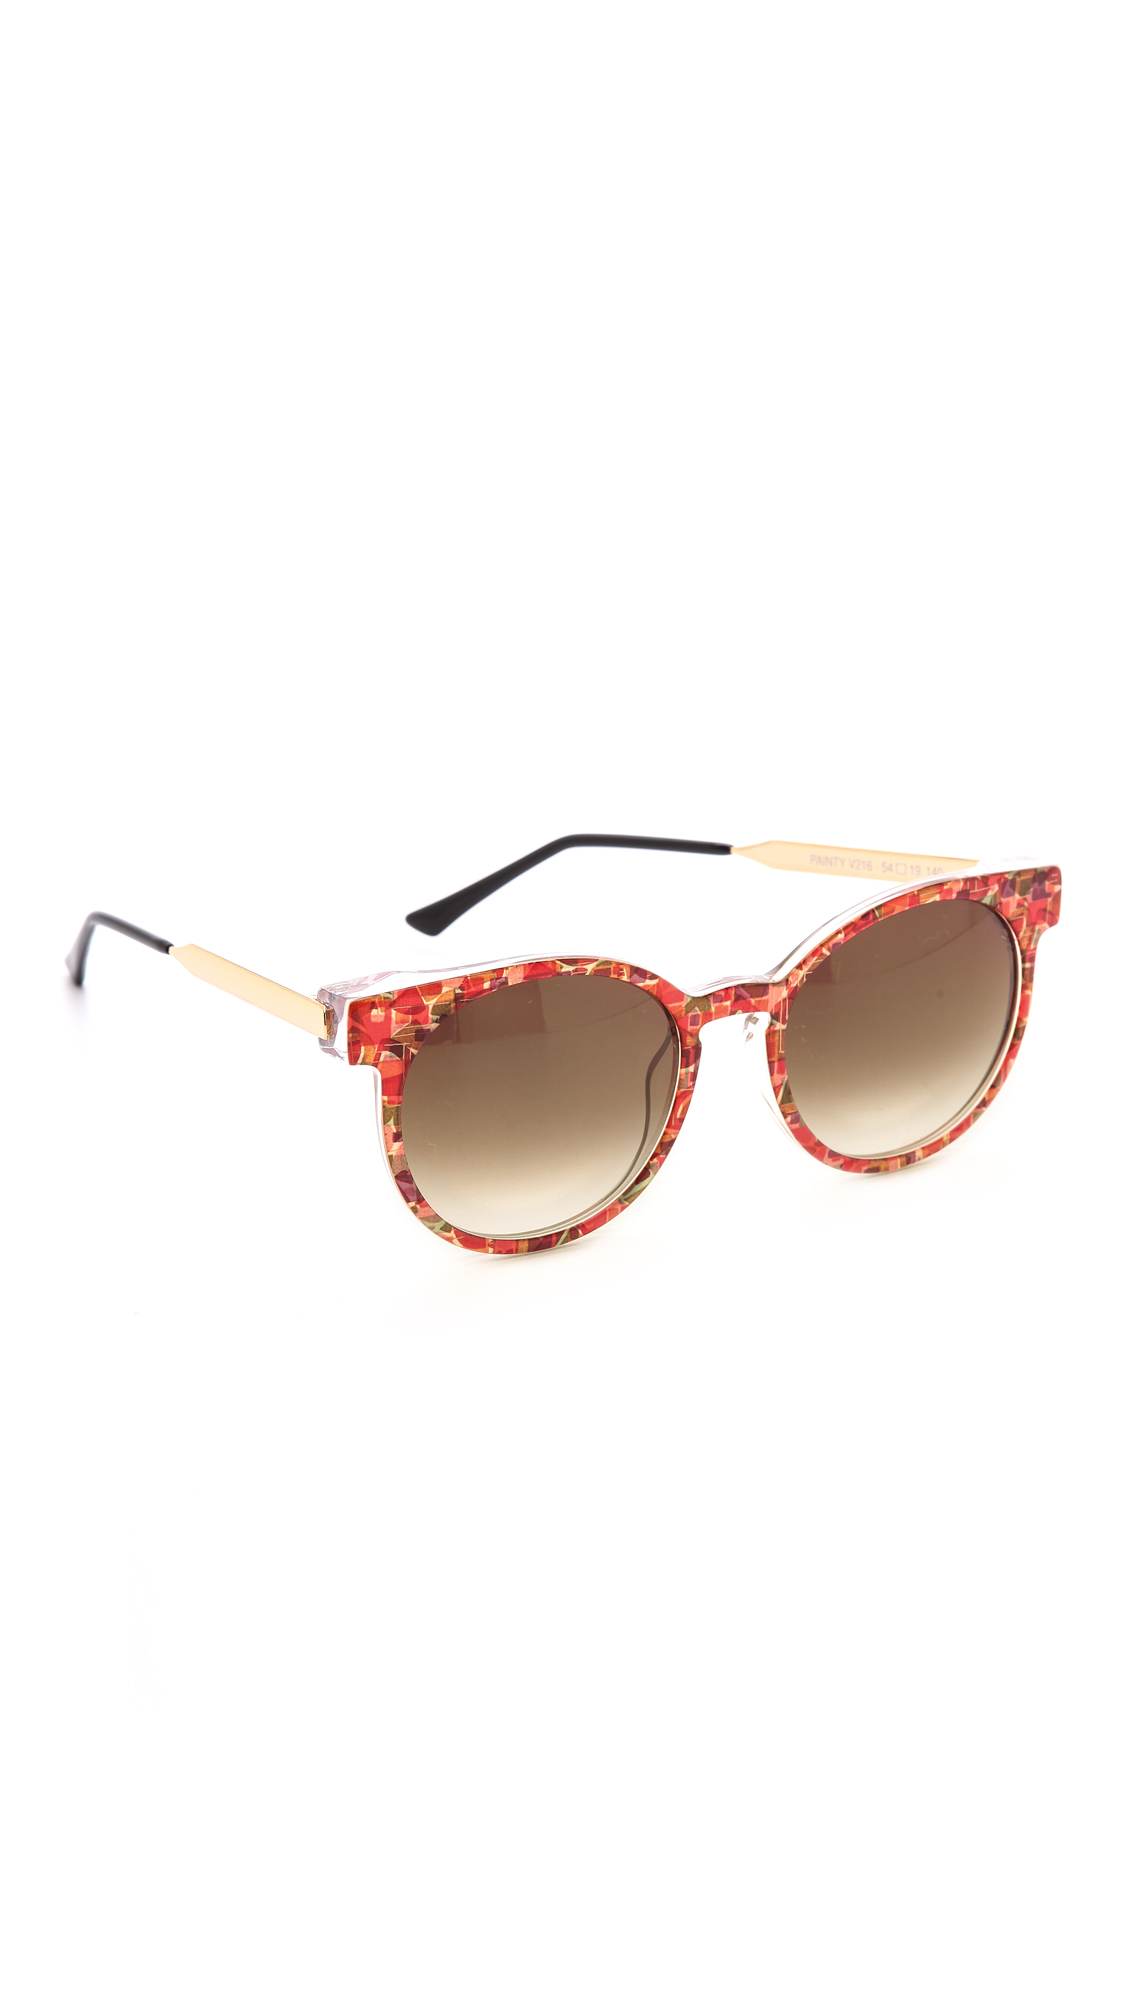 c86cf858c1 Lyst - Thierry Lasry Painty Sunglasses - Greenbrown in Orange